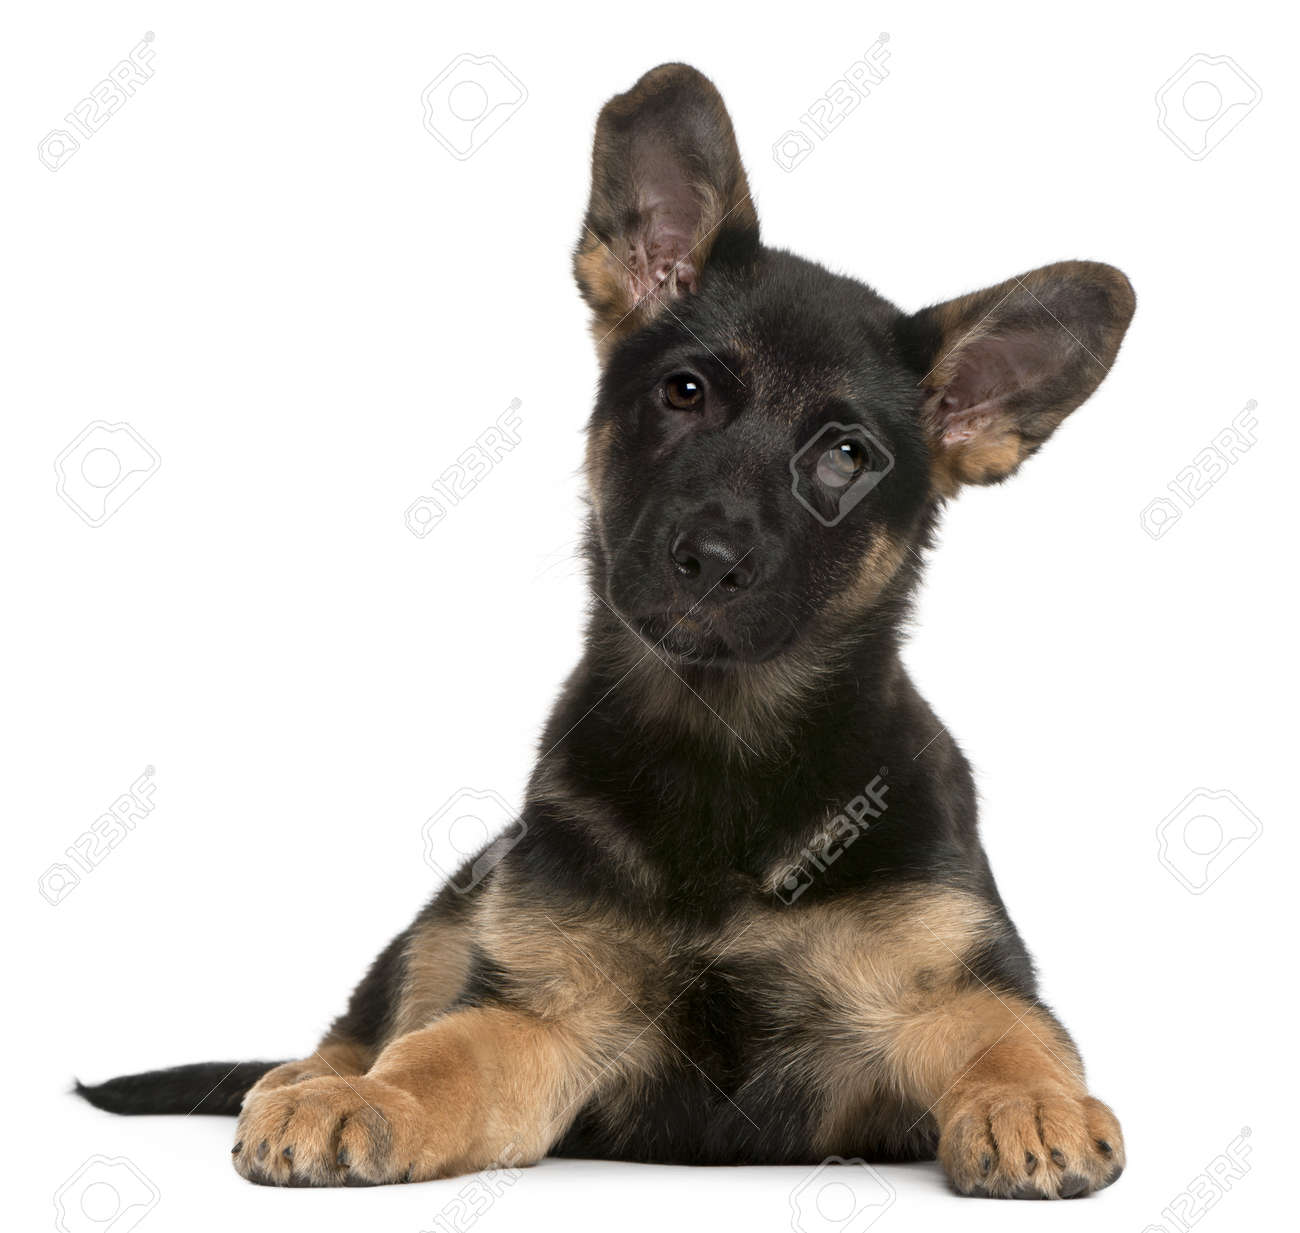 German Shepherd Dog puppy, 3 months old, lying in front of white background Stock Photo - 8652203